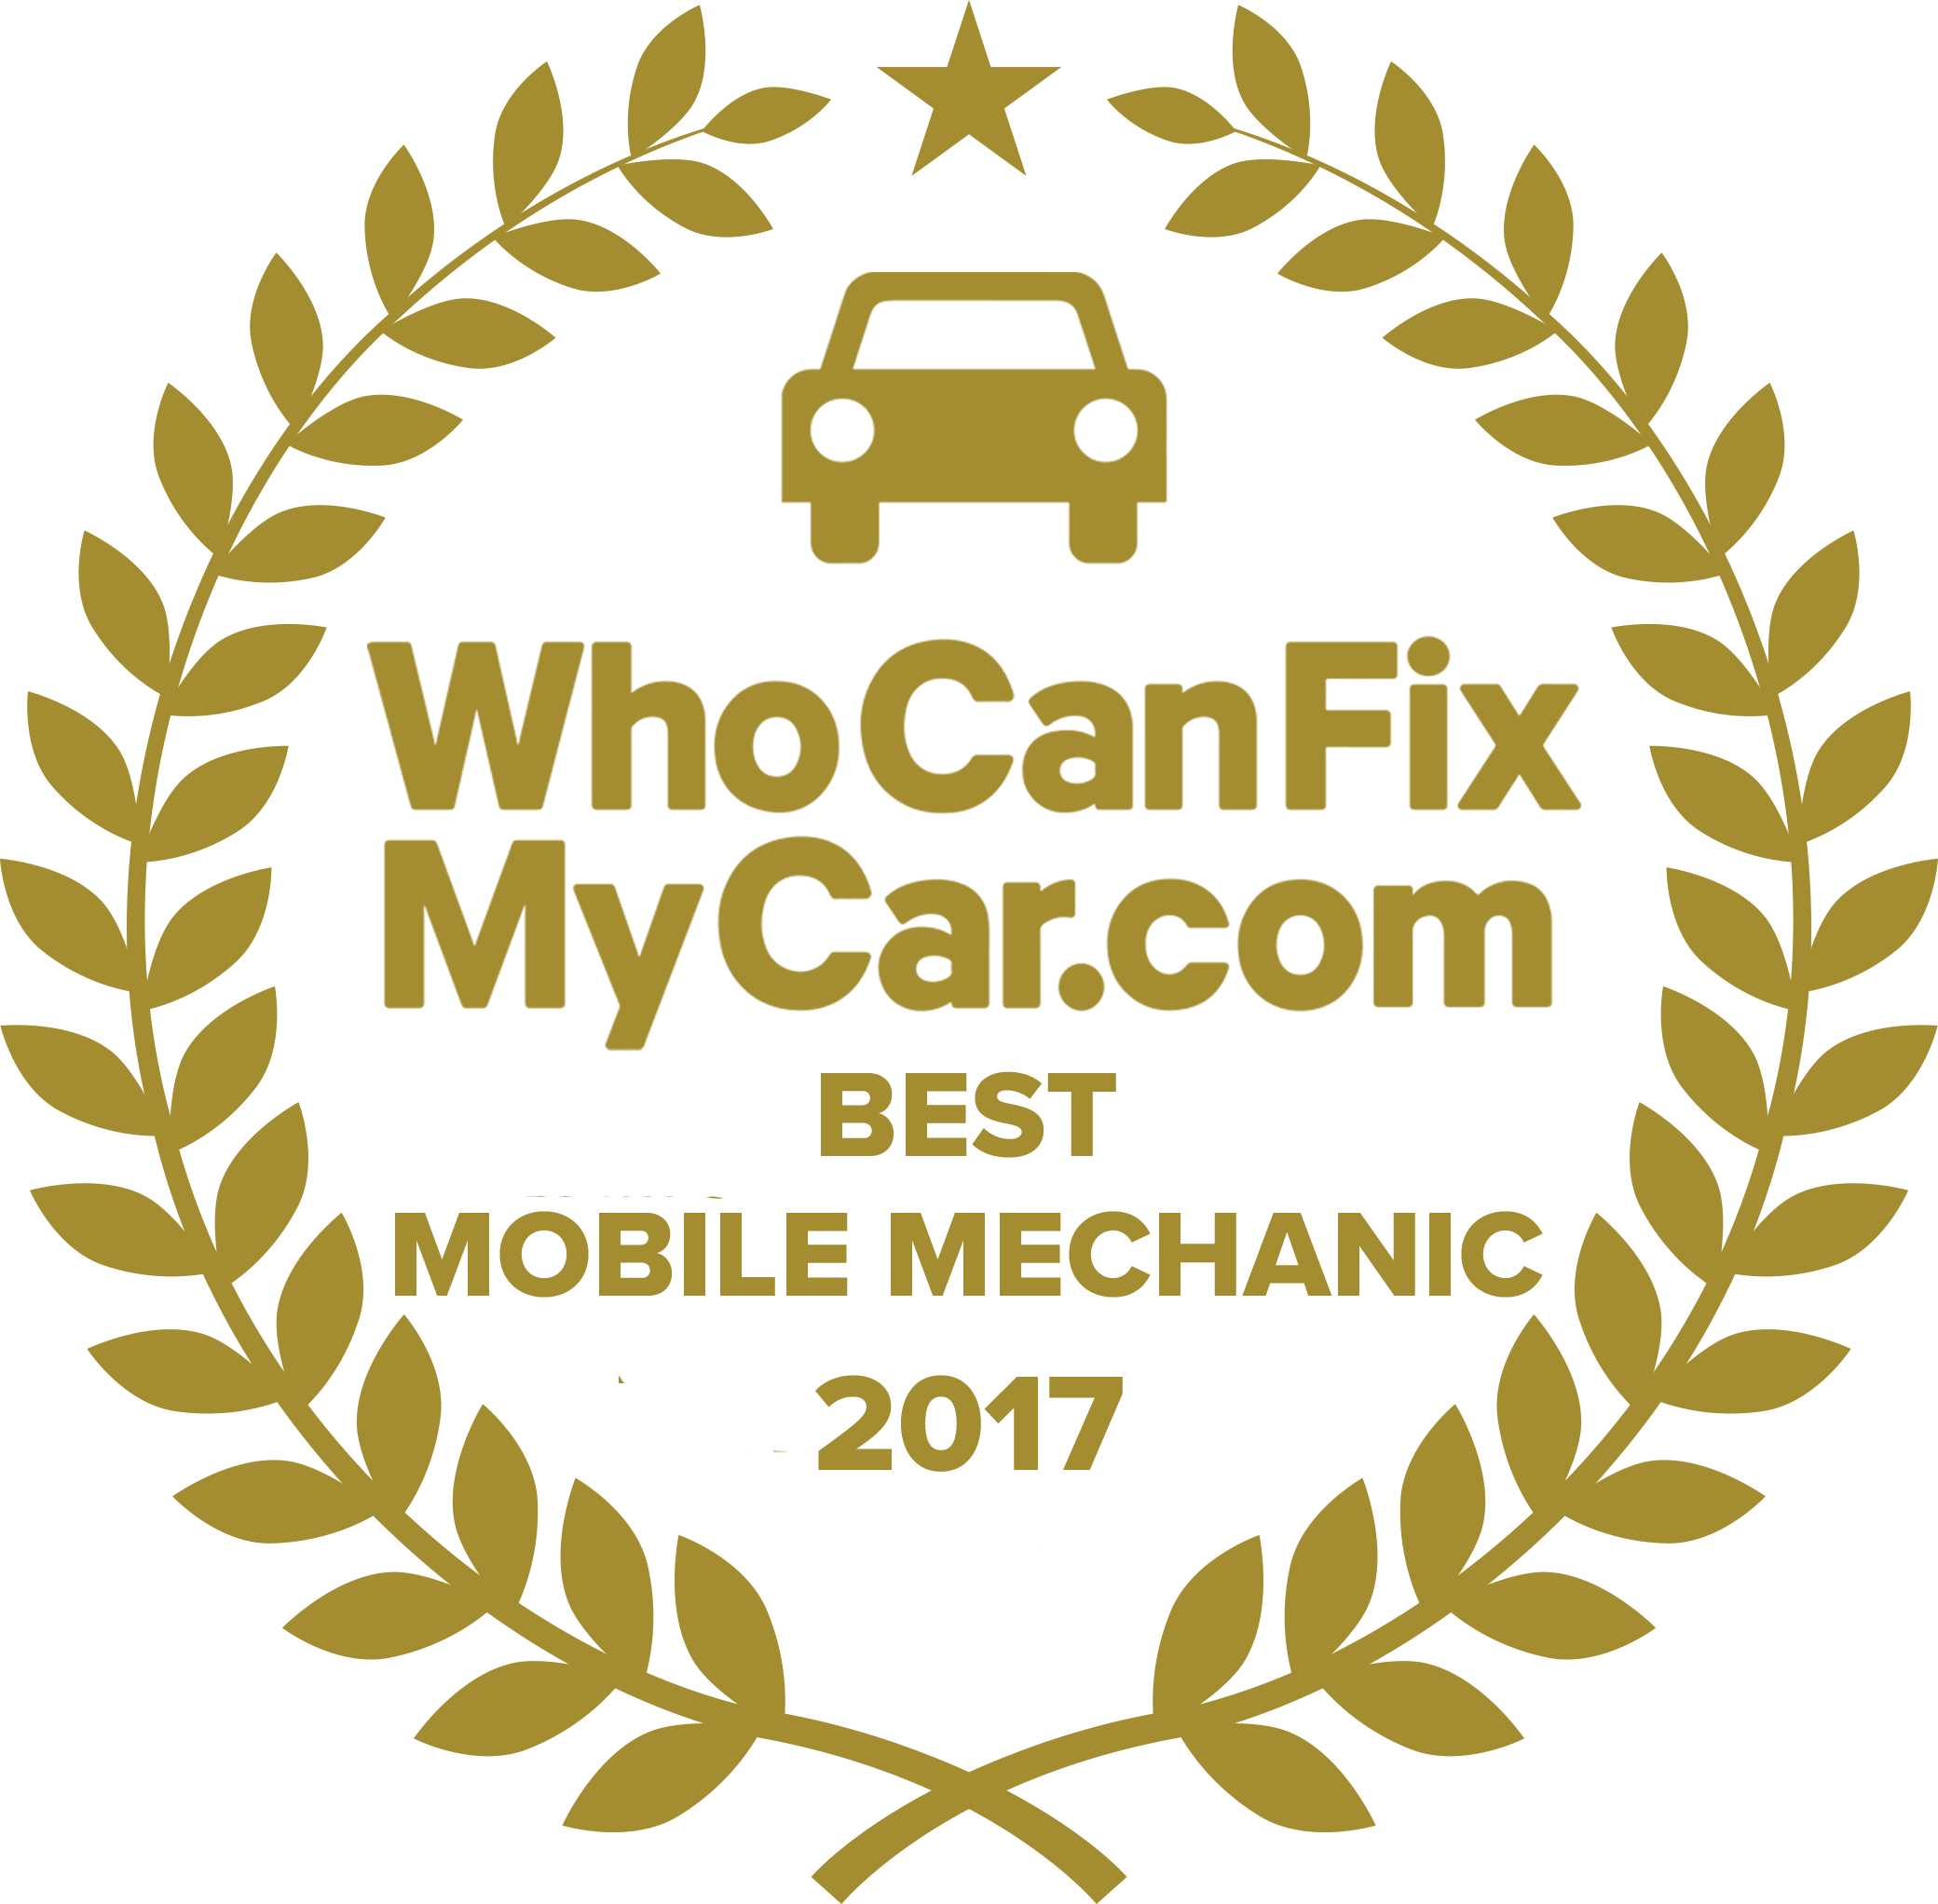 Best Mobile Mechanic 2017